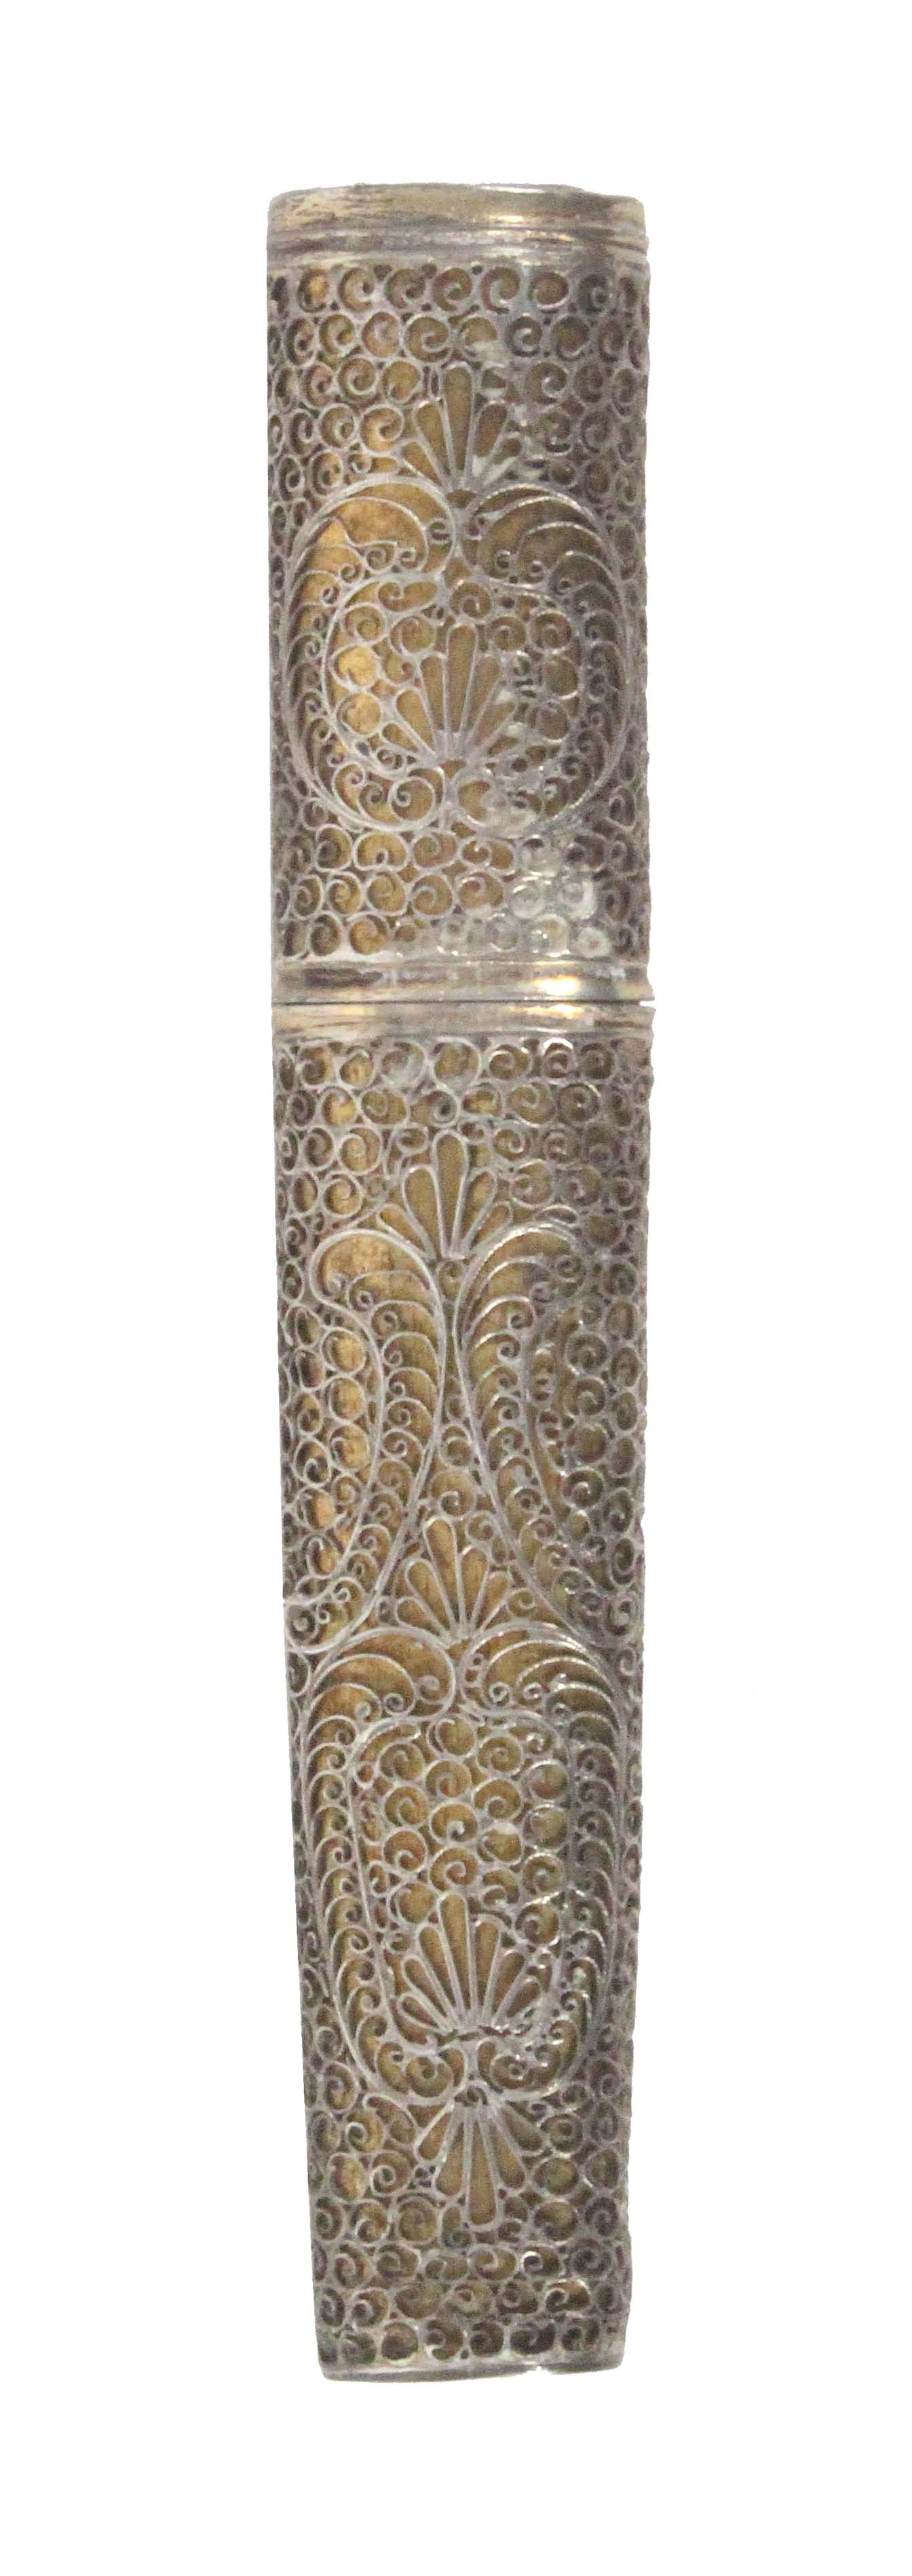 A late 18th Century silver gilt filigree bodkin case, of oval section and tapering form, the quill